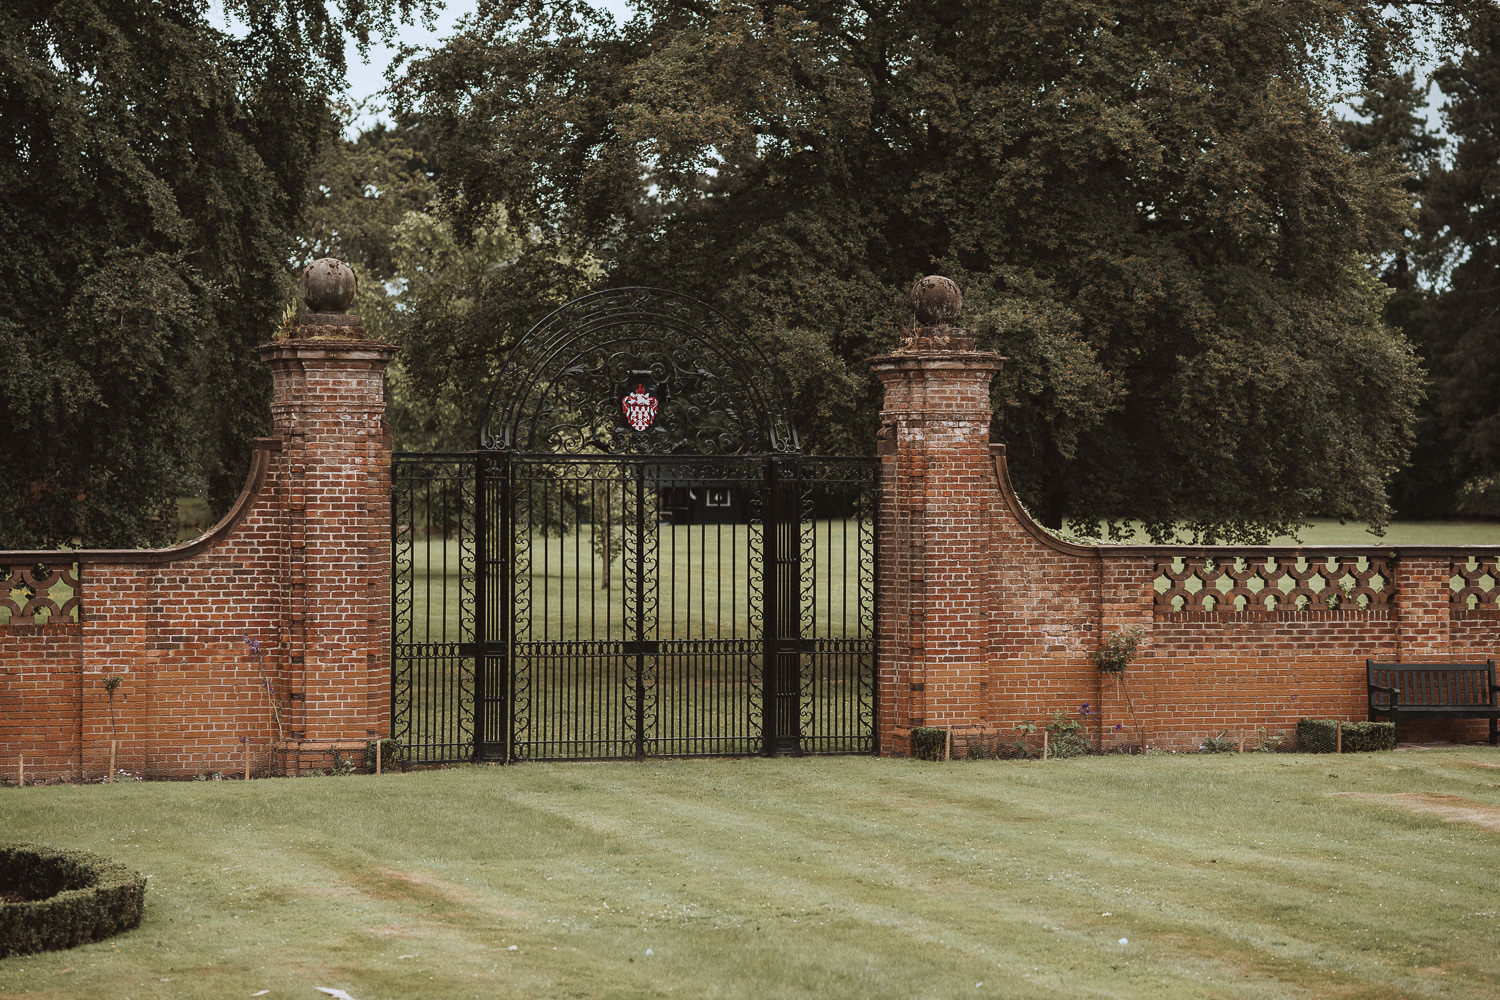 Gates onto the fields at Inglewood Manor, Cheshire